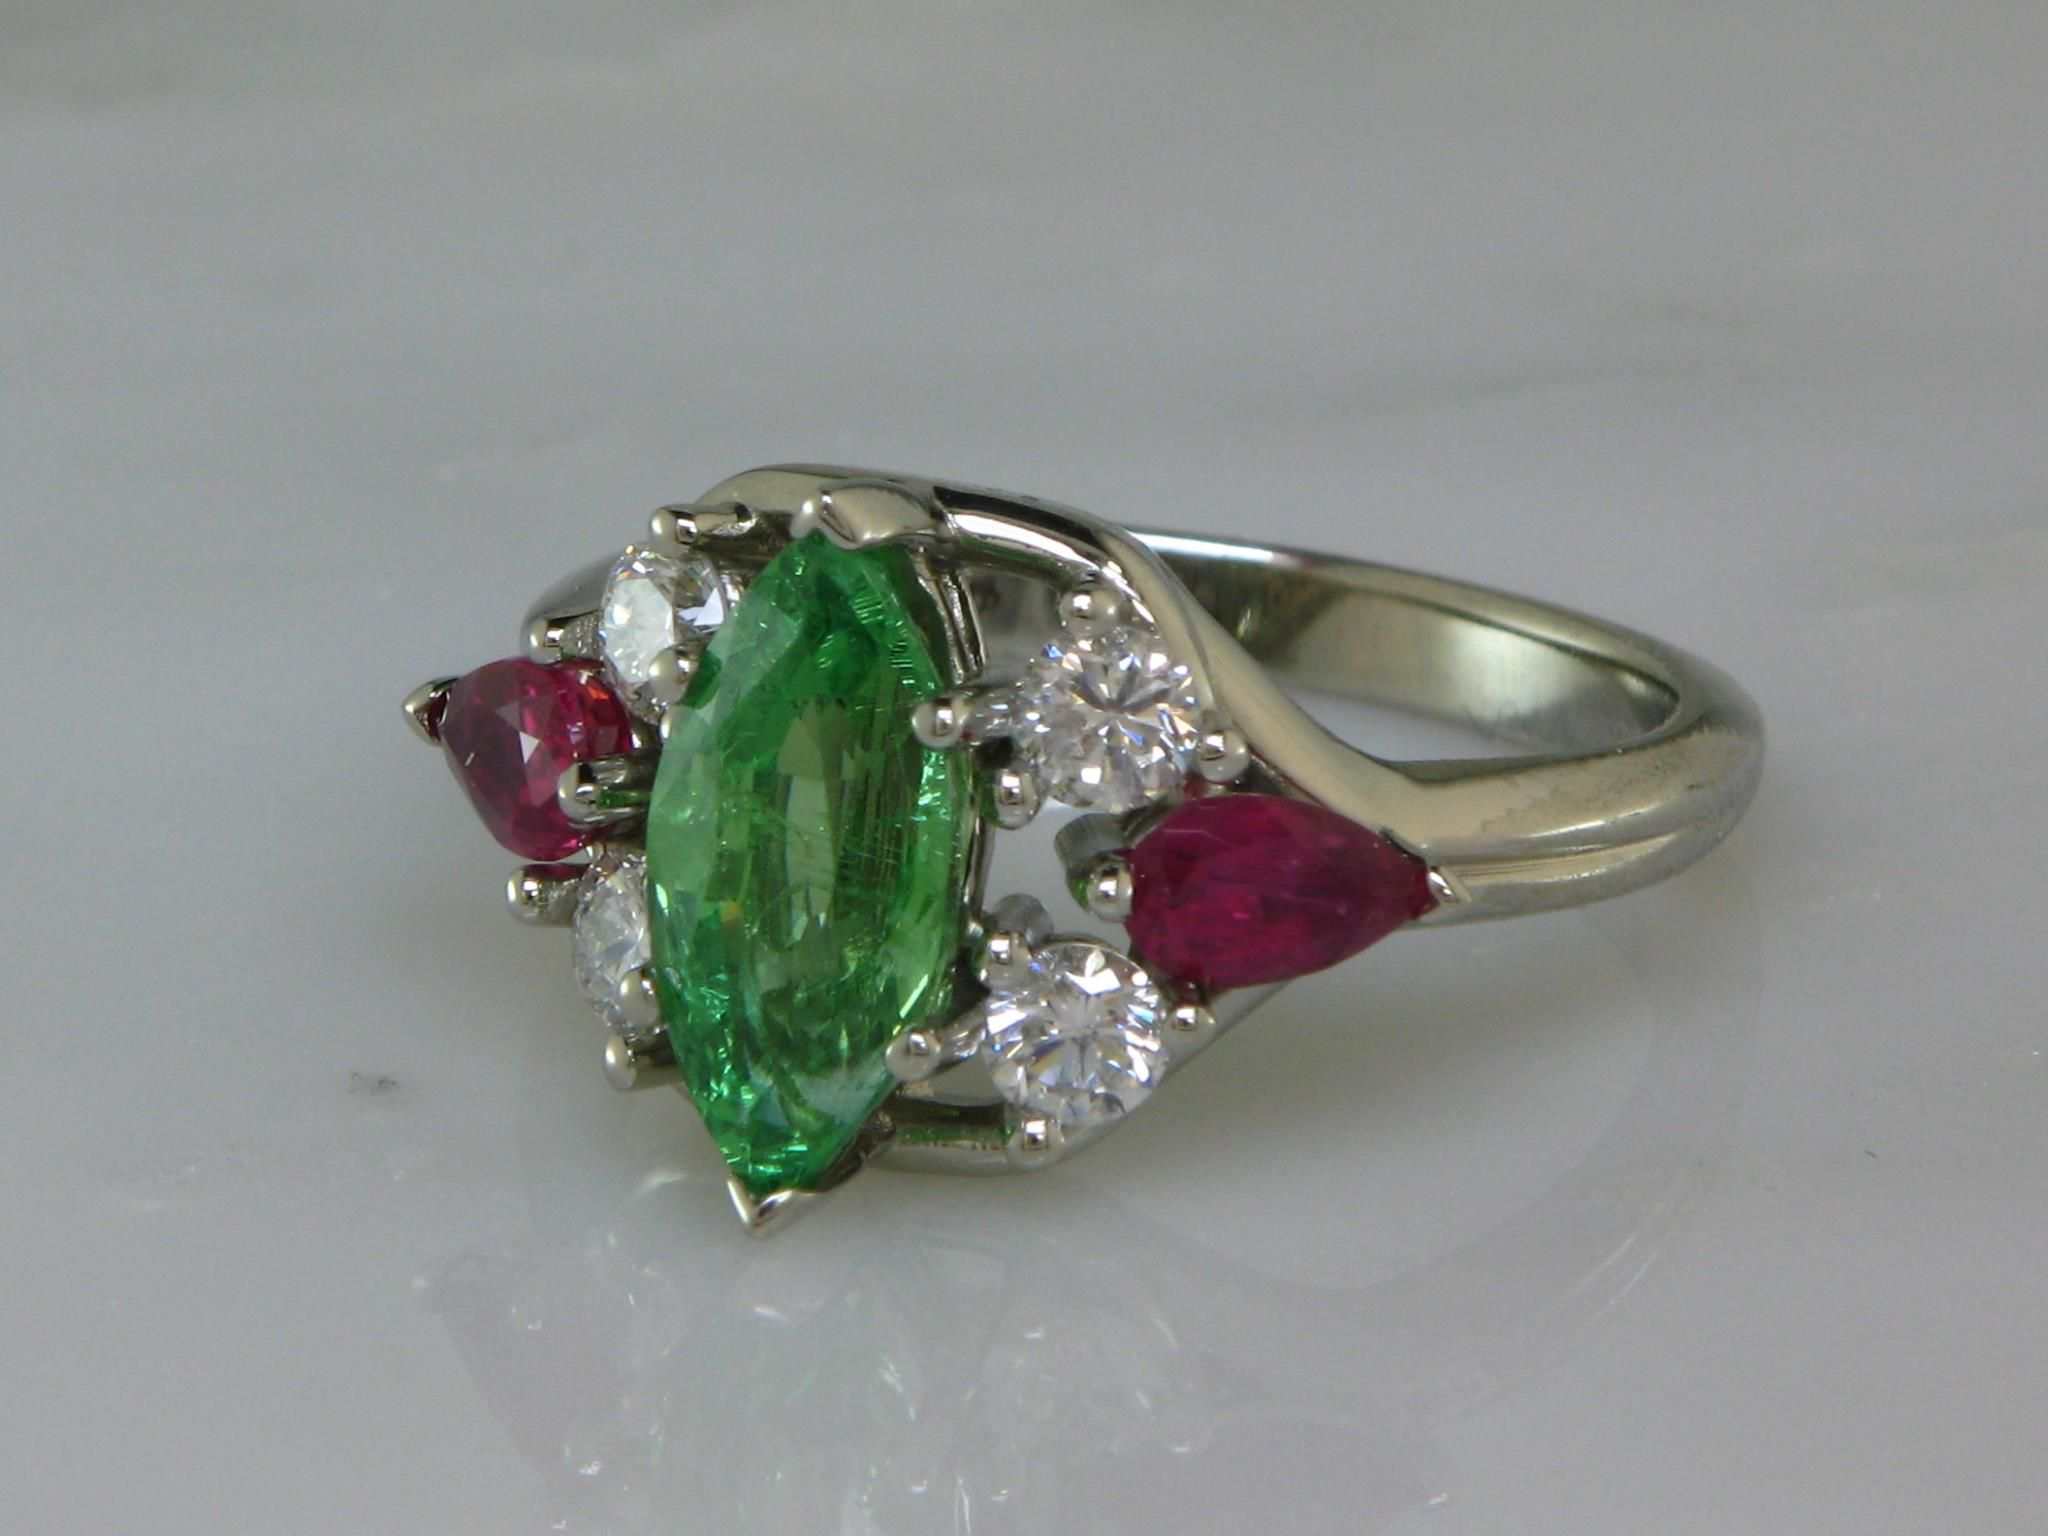 Tsavorite Garnet, a variety of Demantoid Garnet demonstrates the wide variety of colors in the spectrum that Garnet posesses. The Vibrant emerald green variety of garnet, Tsavorite graces the center of this ring. A marquise shape Tsavorite is flanked by four diamonds and two matched pear shape rubies in 14K White Gold and a euroshank to prevent rolling on the finger. The Center Tsavorite weighs 1.82 carats, the Rubies total  .66 carats and the Diamonds total .40 carats total weight…